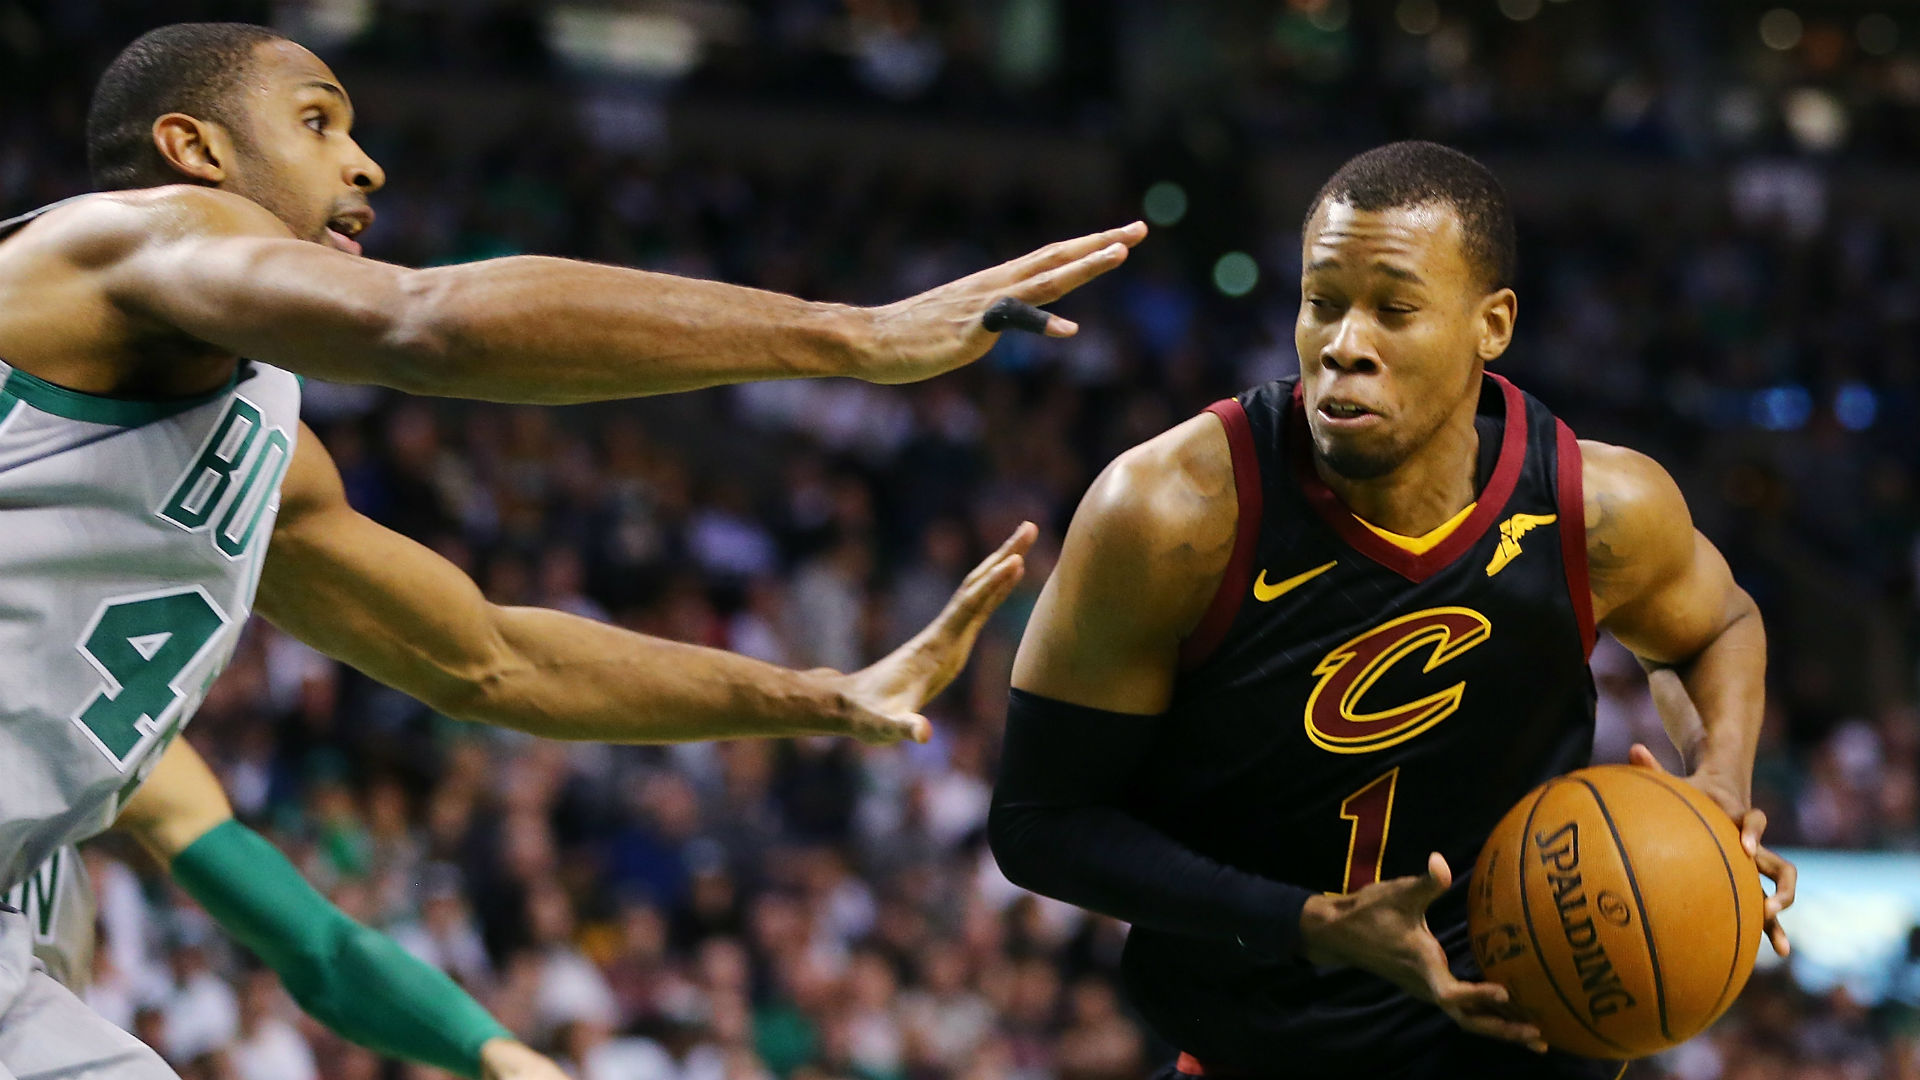 Look Cavs Blow Out Celtics in Boston